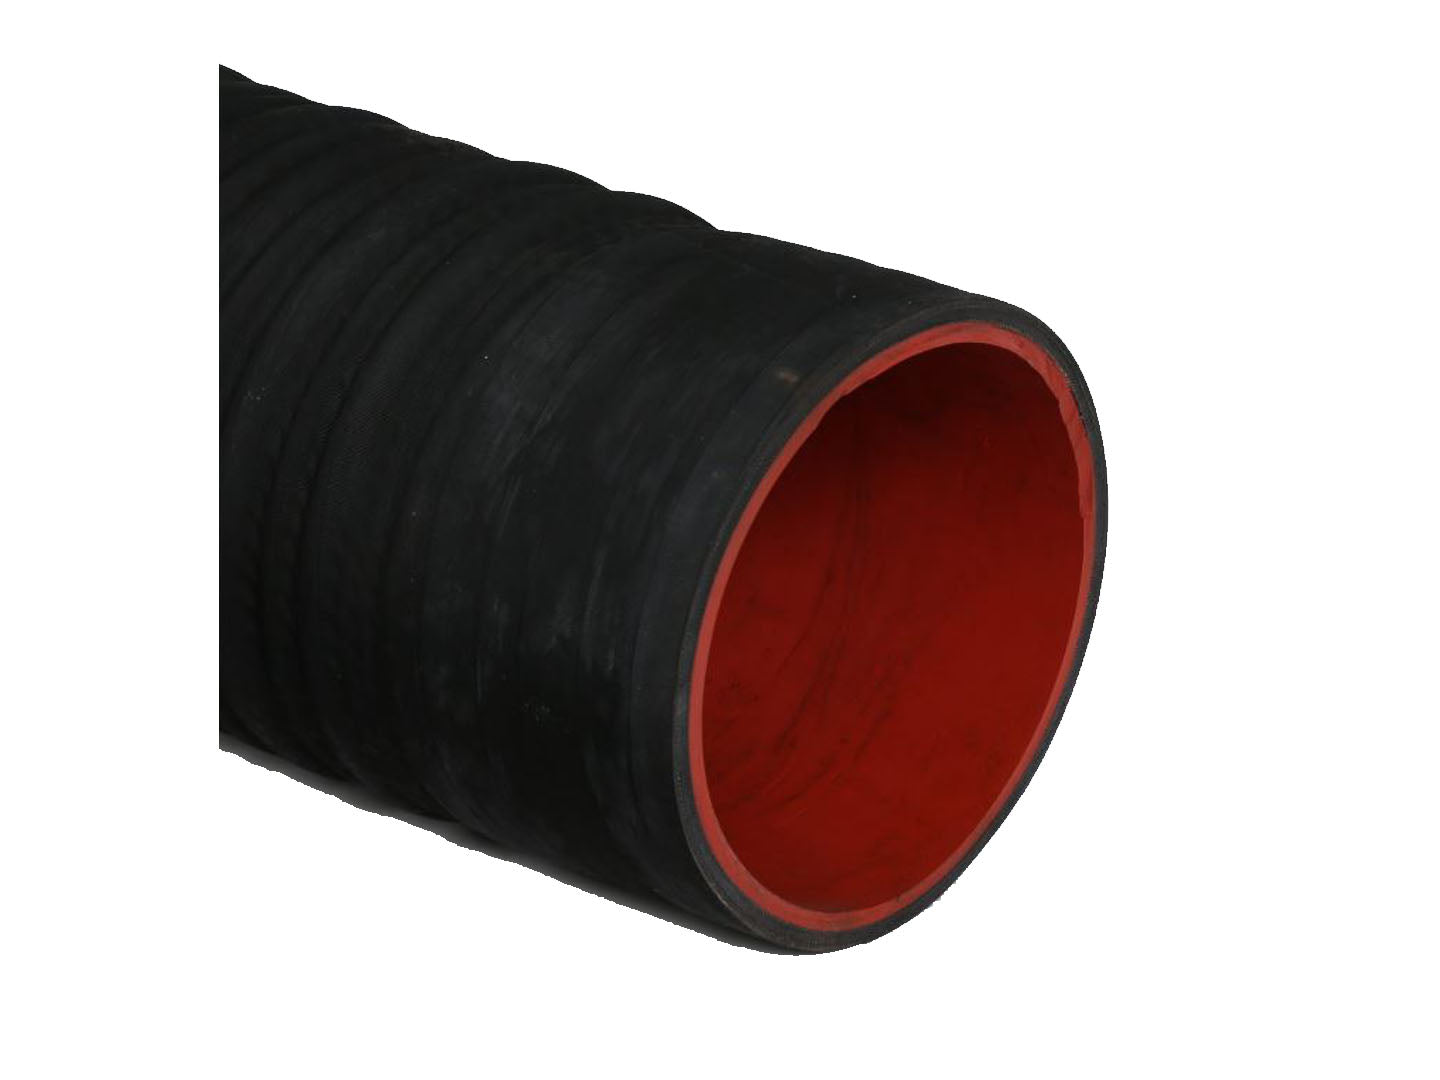 "6"" Corrugated boom hose with 1/4"" Red gum tube - hydrovacparts.ca"